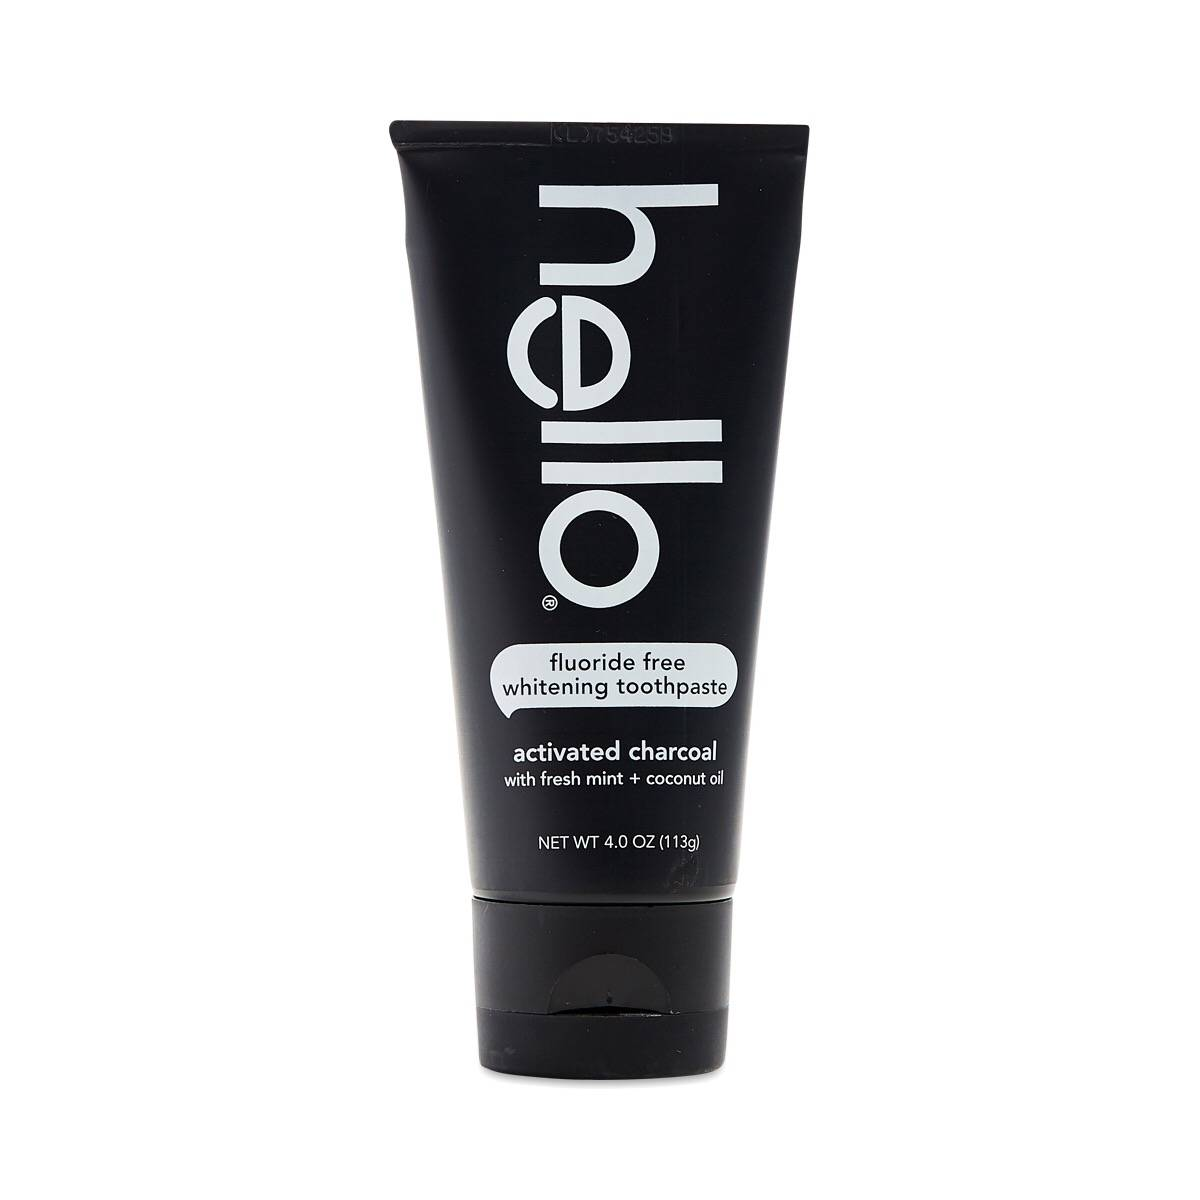 activated charcoal whitening toothpaste by hello thrive market. Black Bedroom Furniture Sets. Home Design Ideas